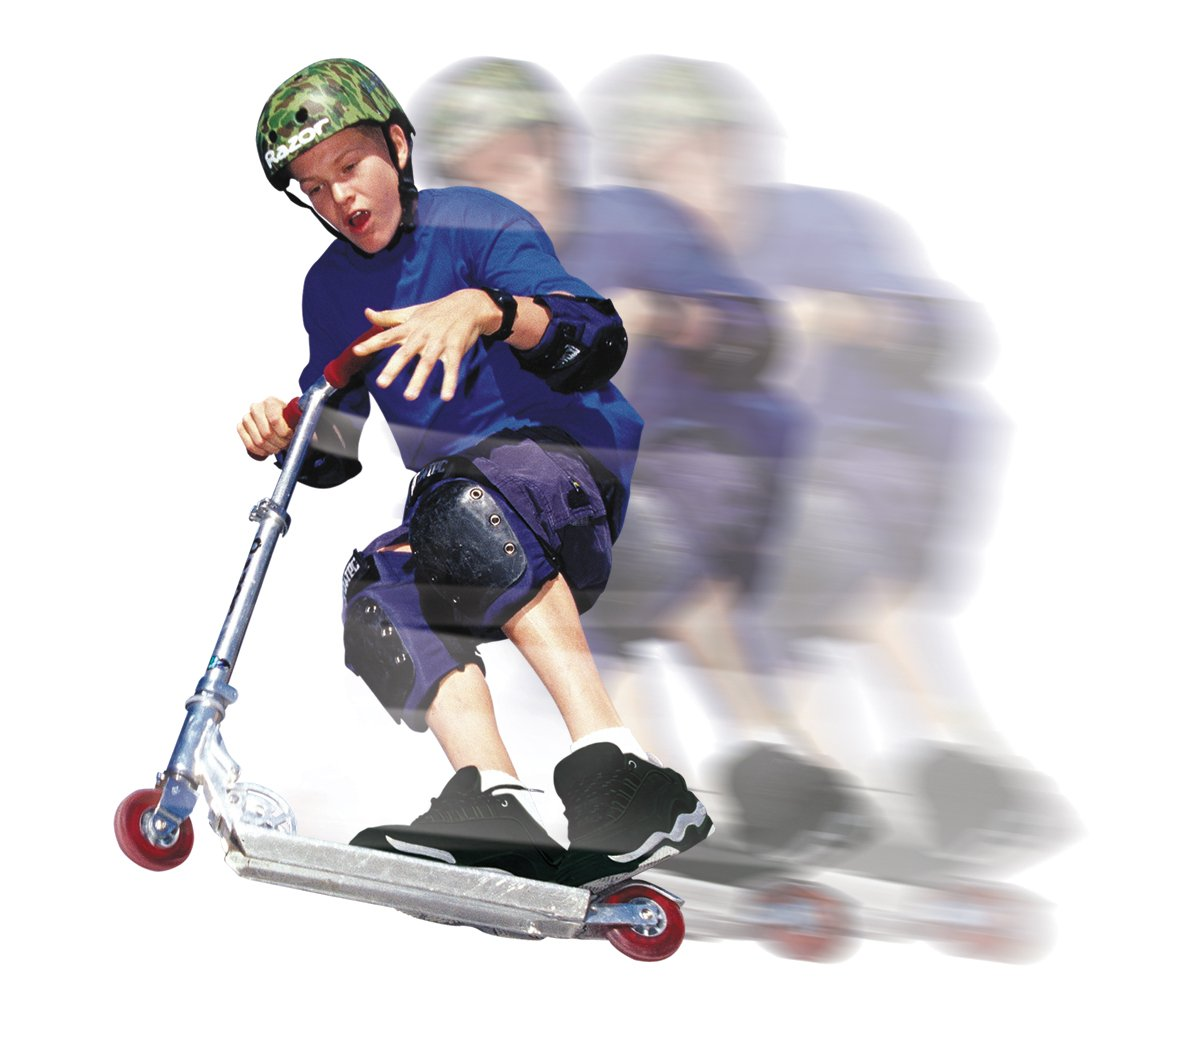 scooter - gross motor skills